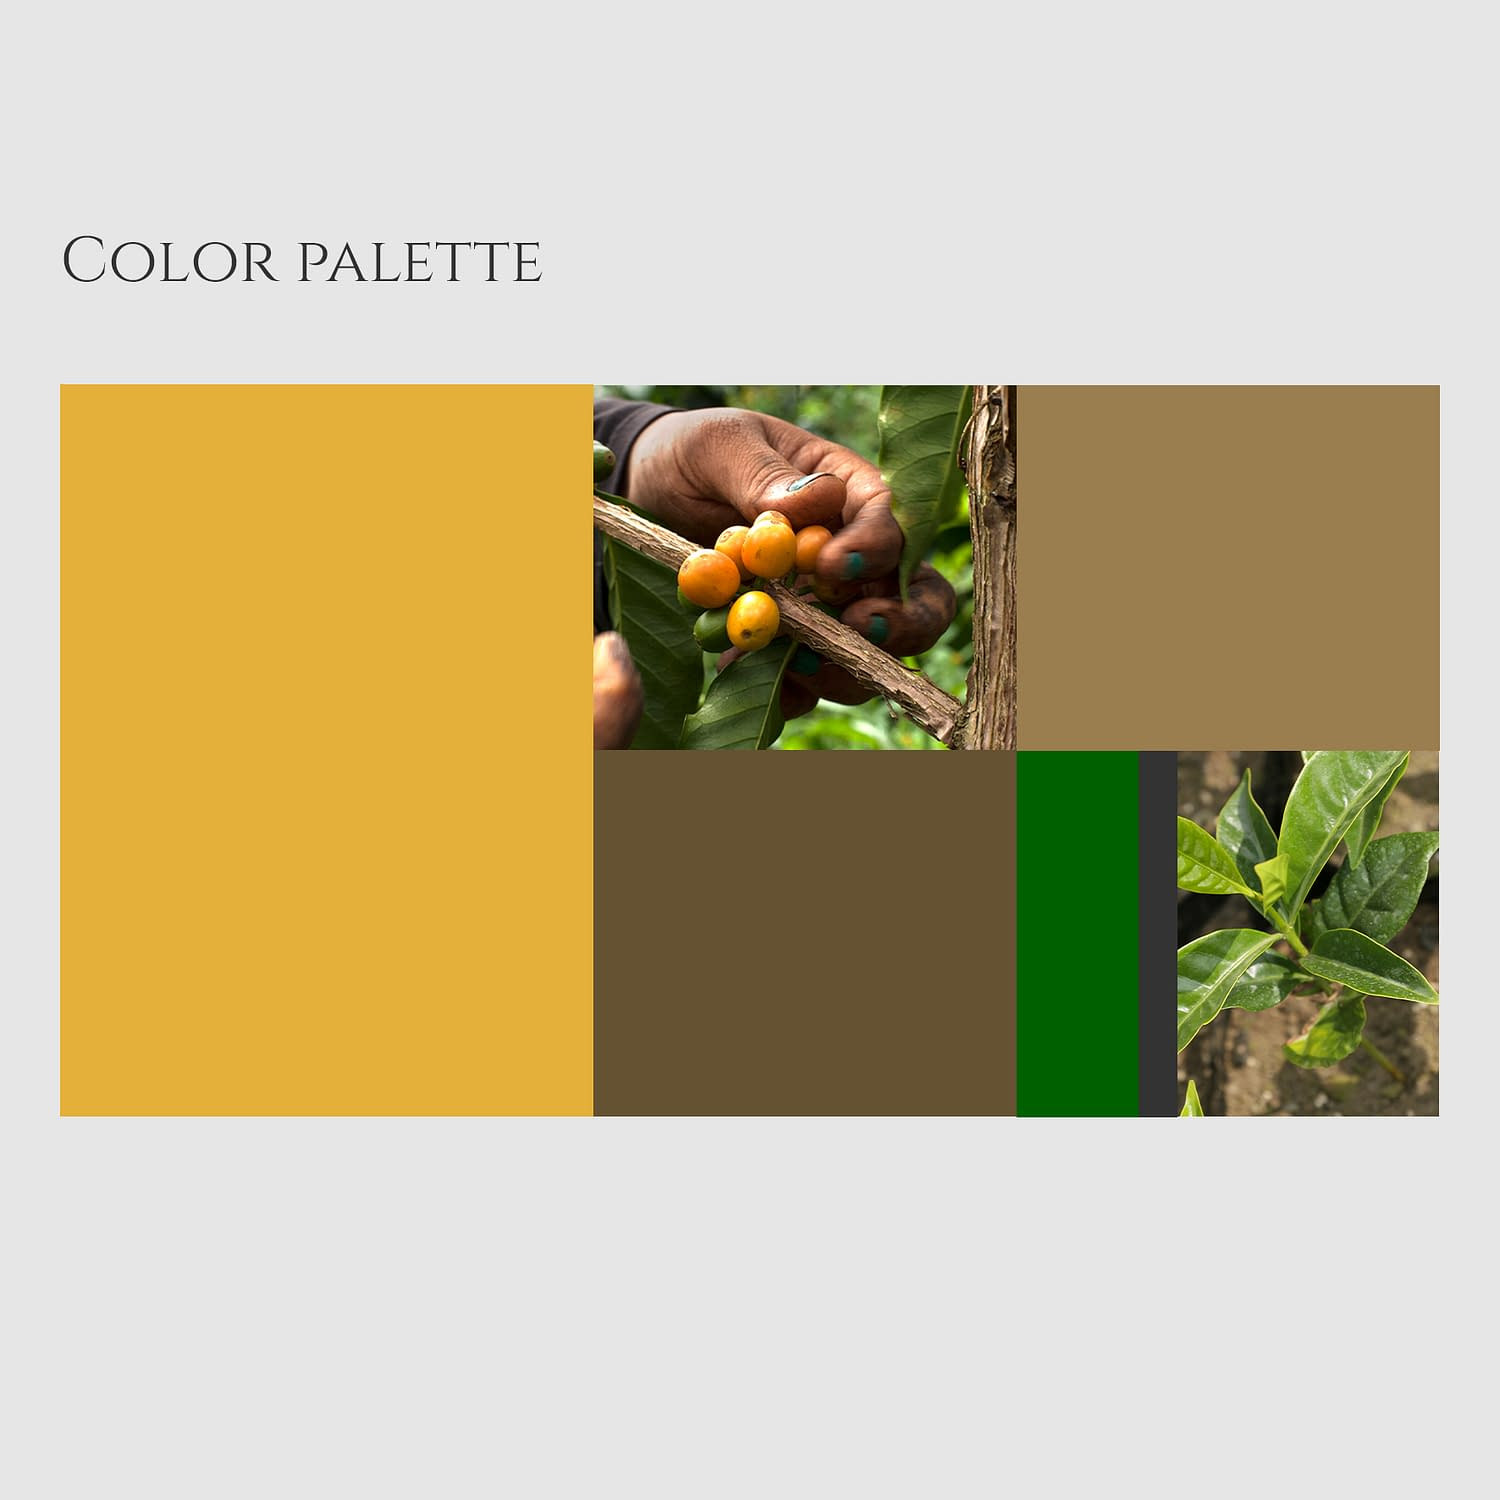 Colombian Exotic Coffee - color palette